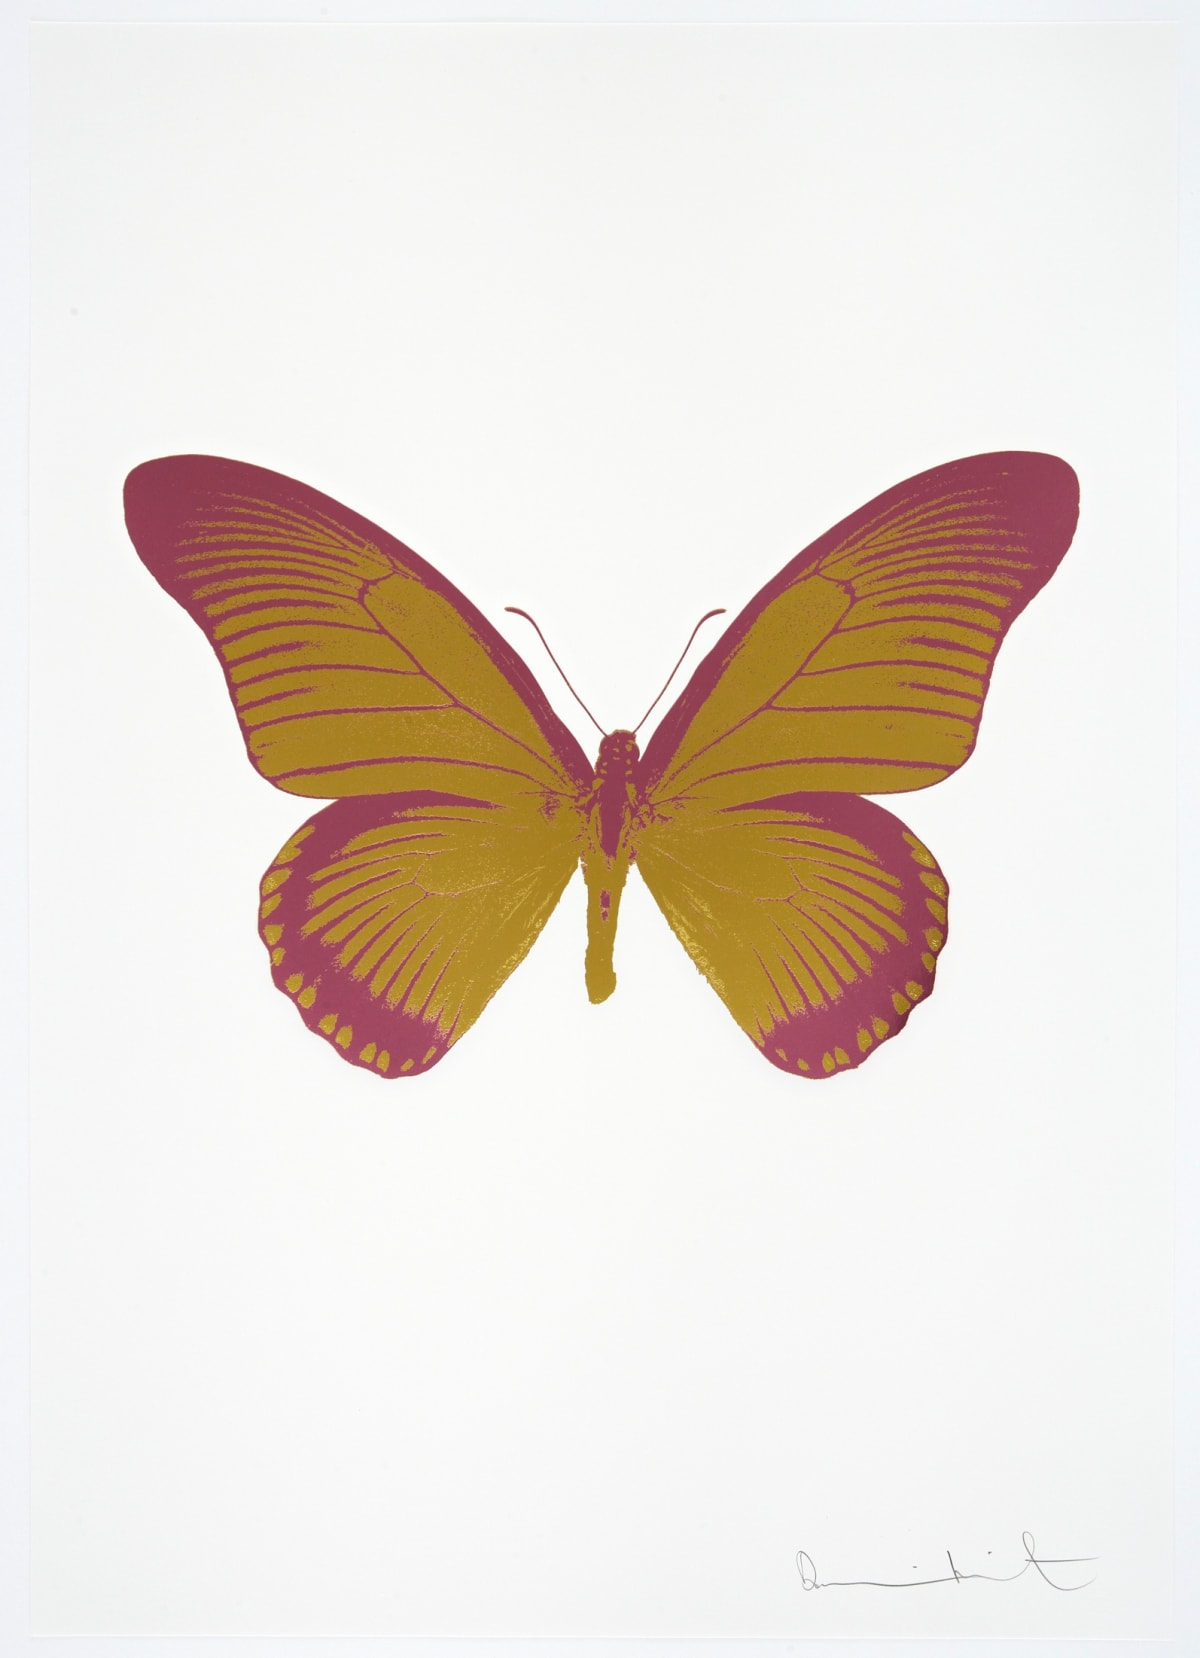 Damien Hirst The Souls IV - Oriental Gold/Loganberry Pink, 2010 2 colour foil block on 300gsm Arches 88 archival paper. Signed and numbered. Published by Paul Stolper and Other Criteria 72 x 51cm OC7994 / 1418-17 Edition of 15